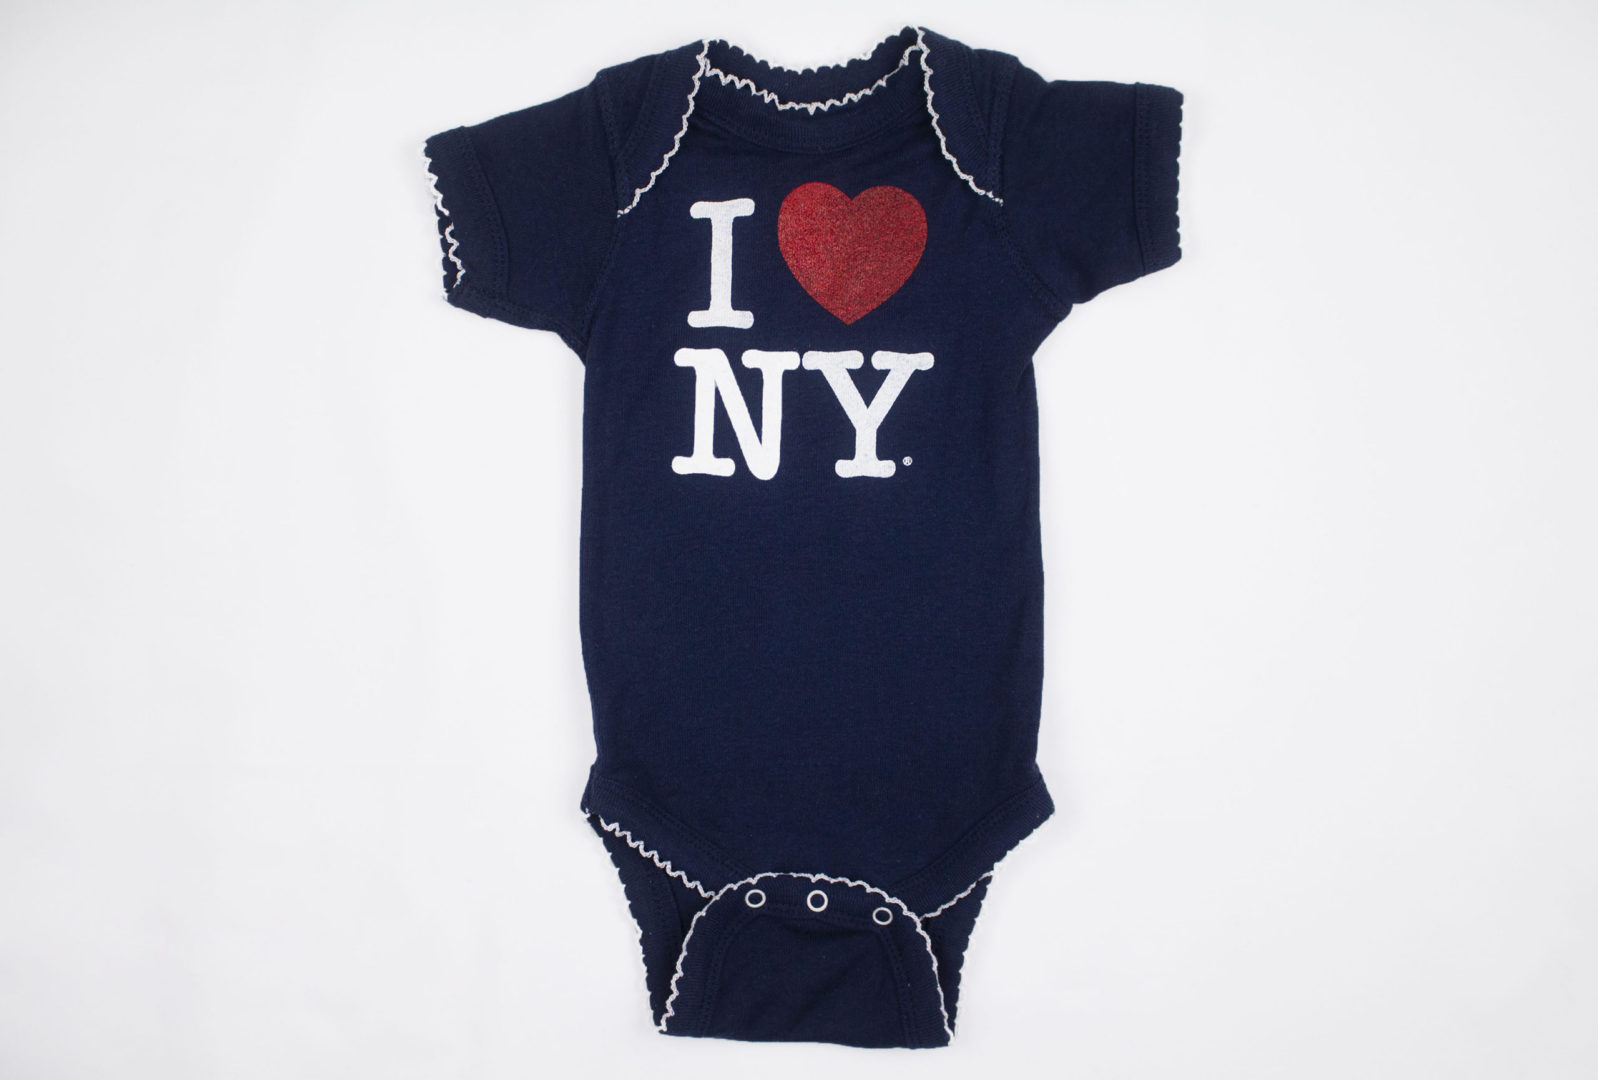 Blue onesie with text